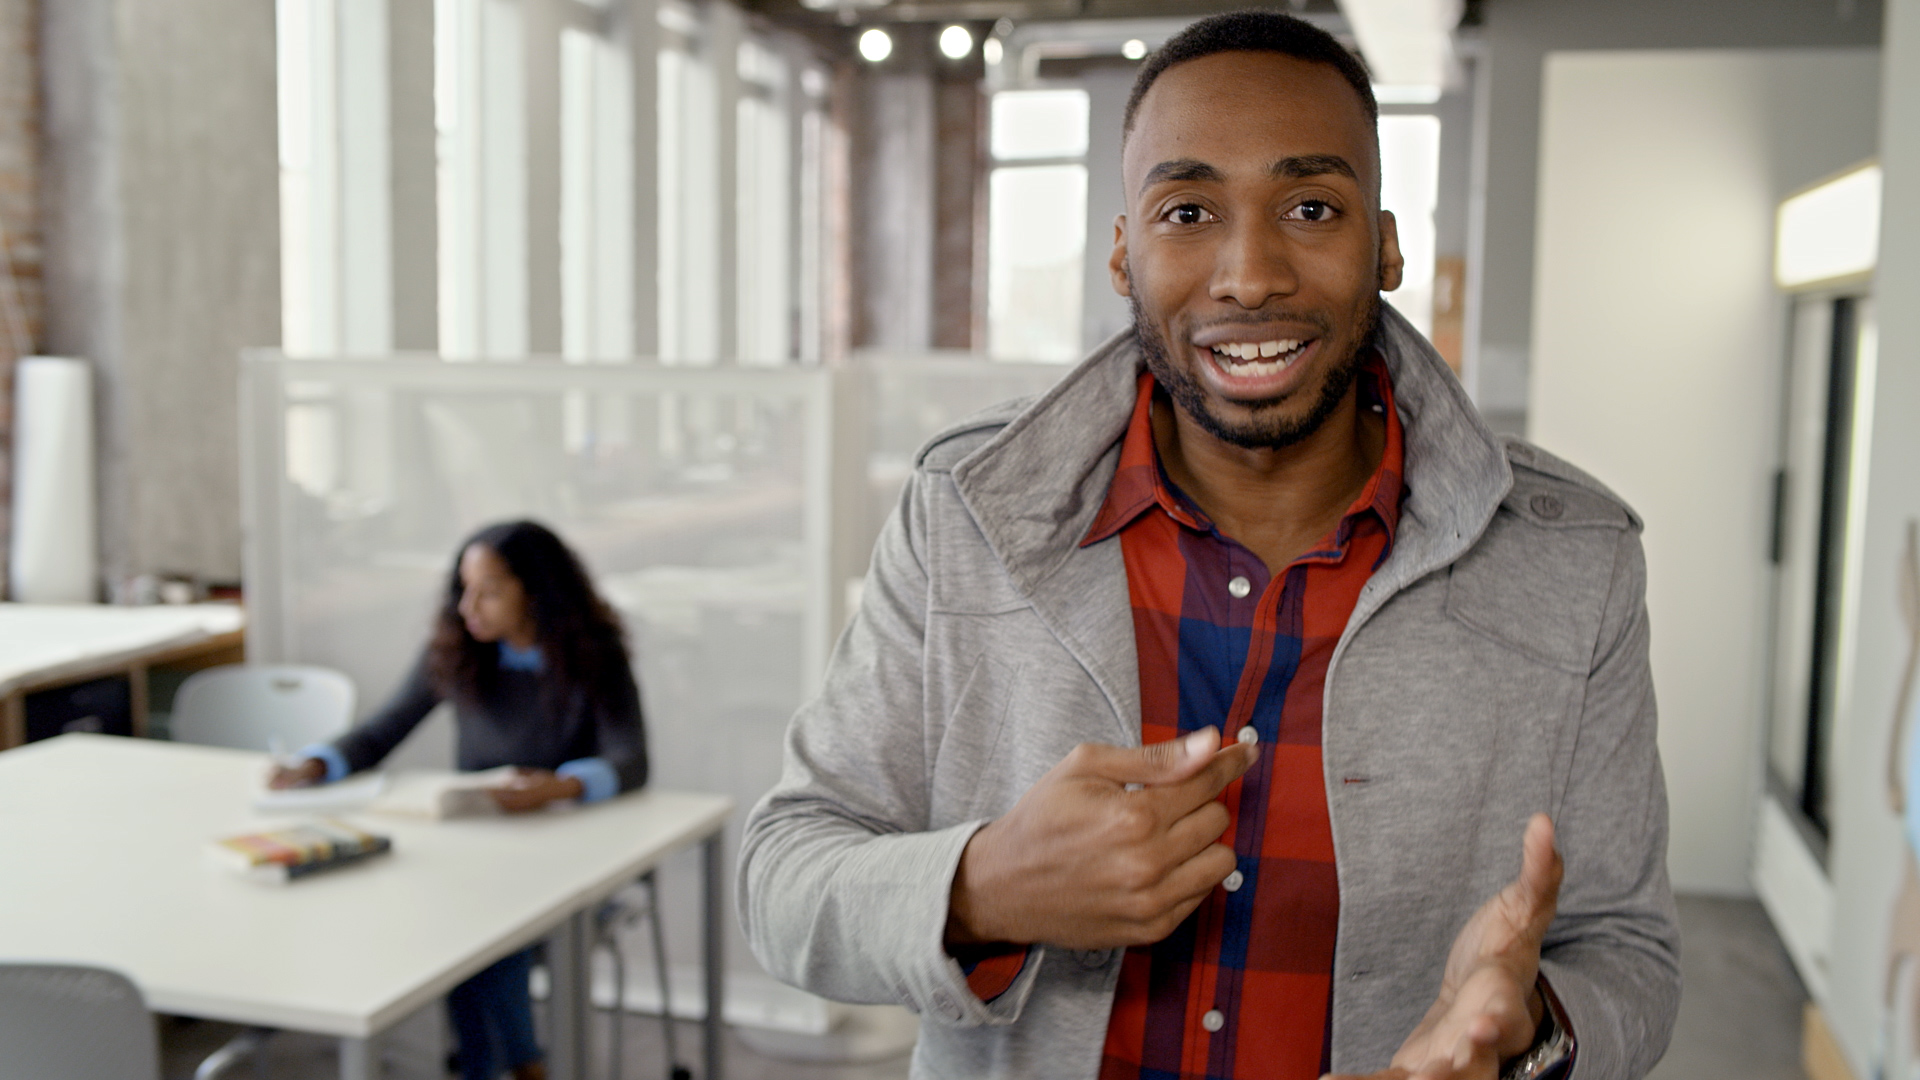 Chevrolet partnered with Spoken Word artist Prince Ea, who creat